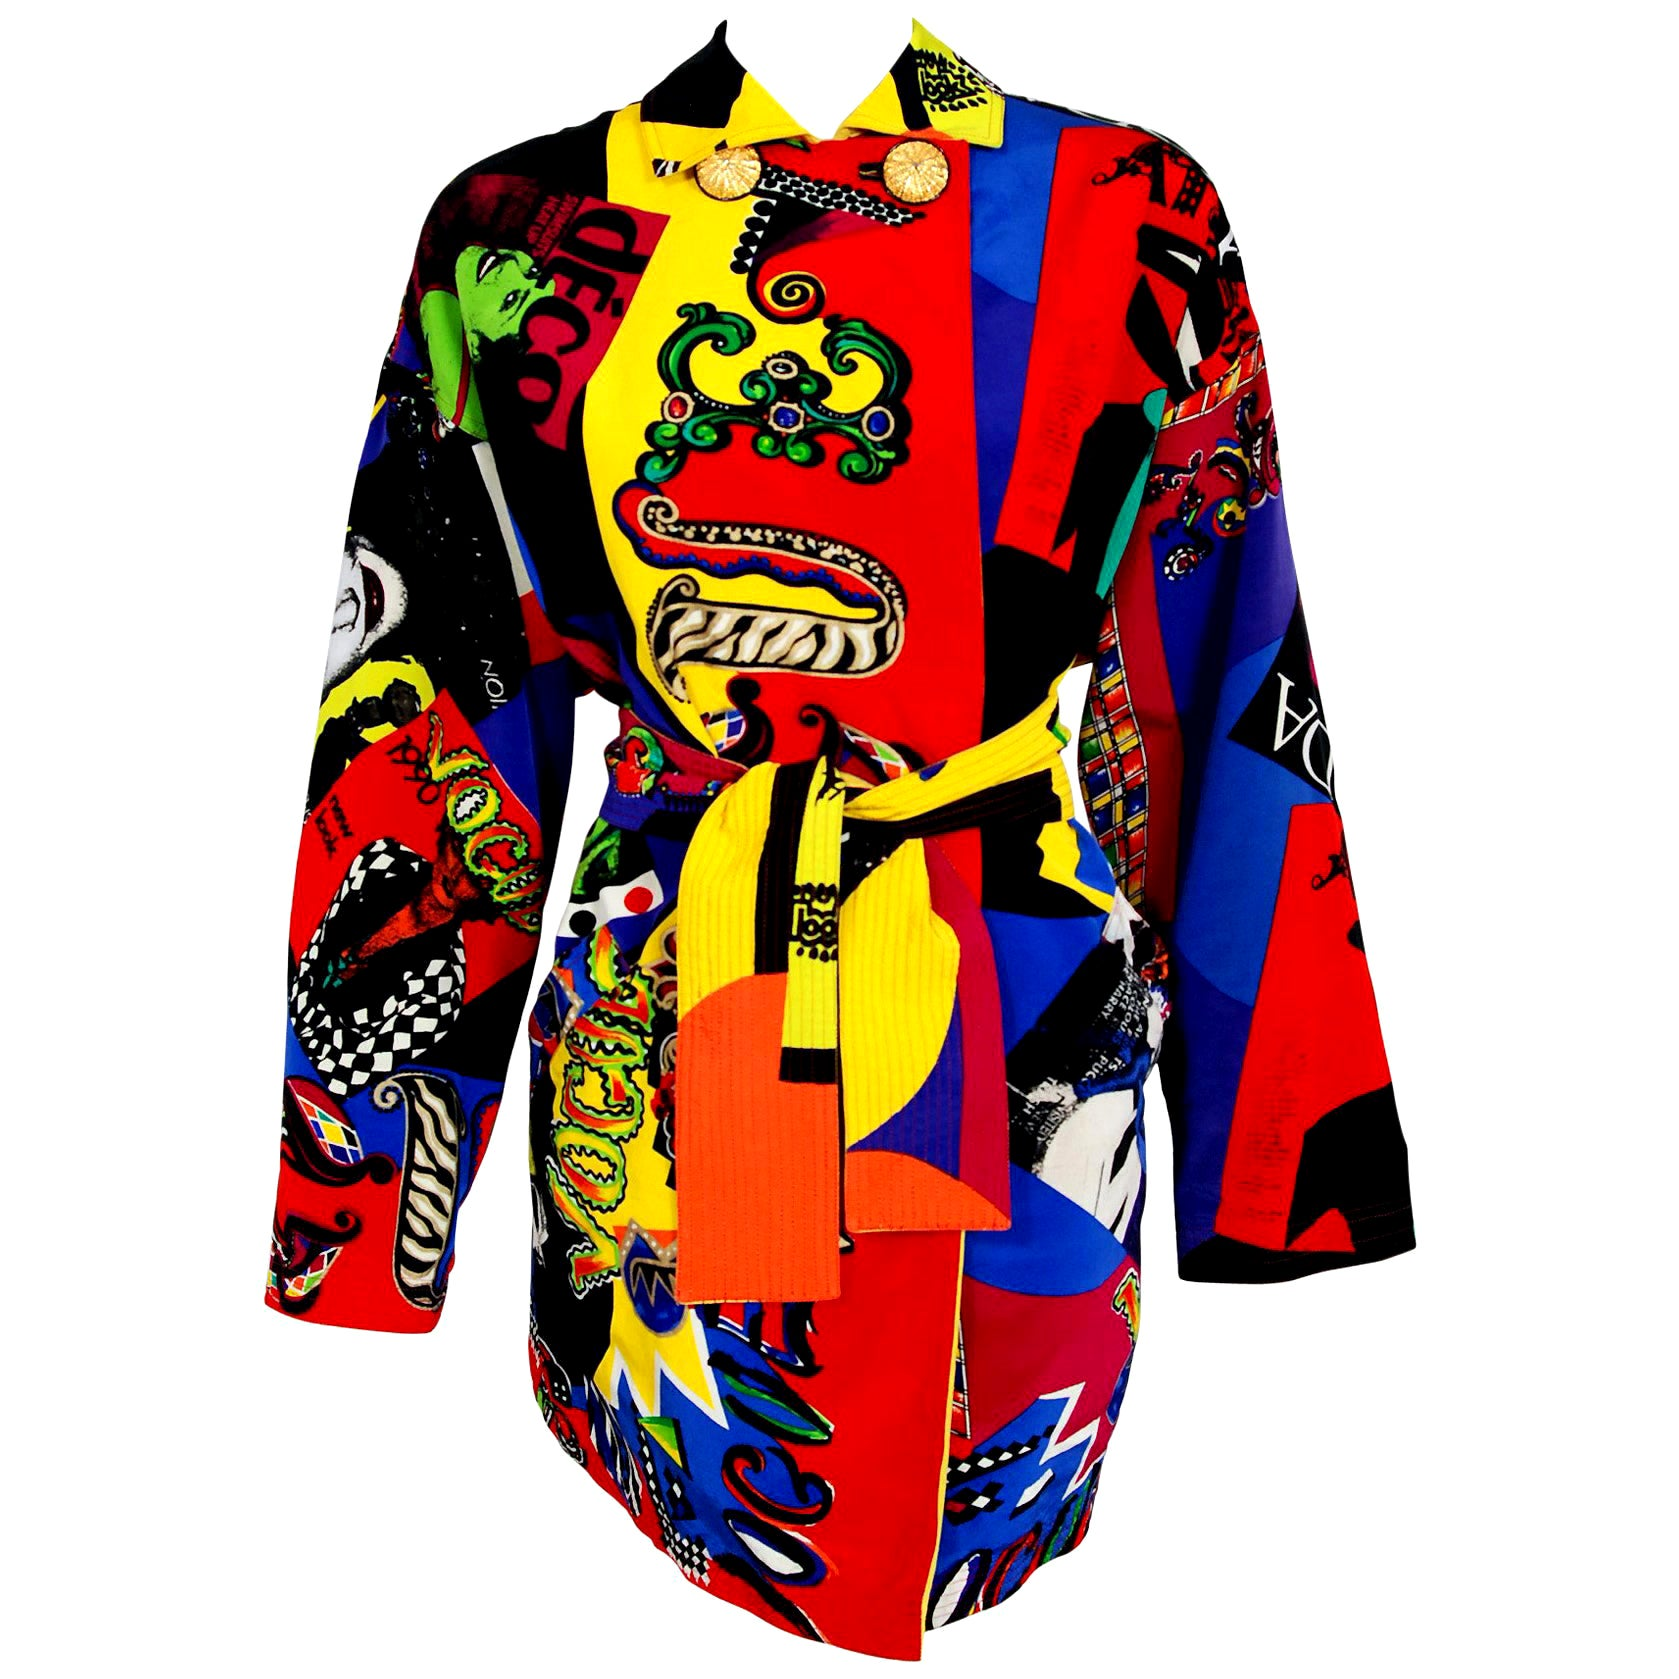 Vintage 1991 Versace Couture Colorful Vogue Print Reversible Belted Trench Coat